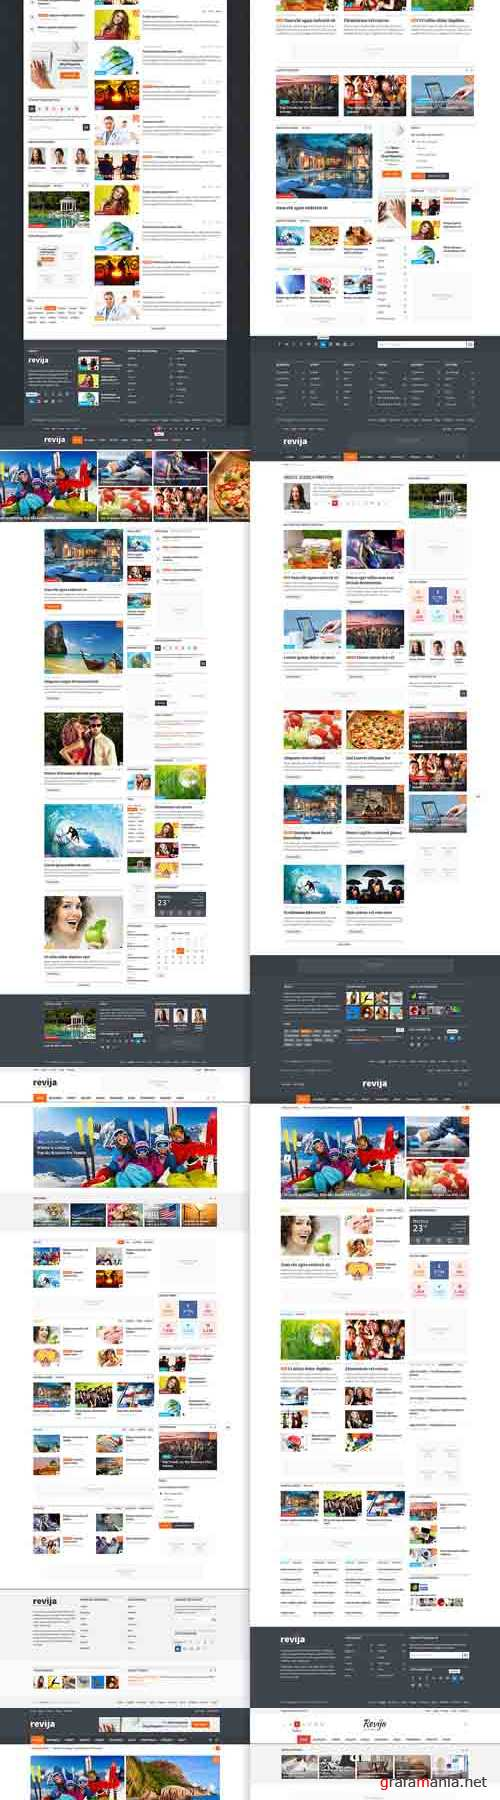 Revija - Blog/Magazine PSD Template